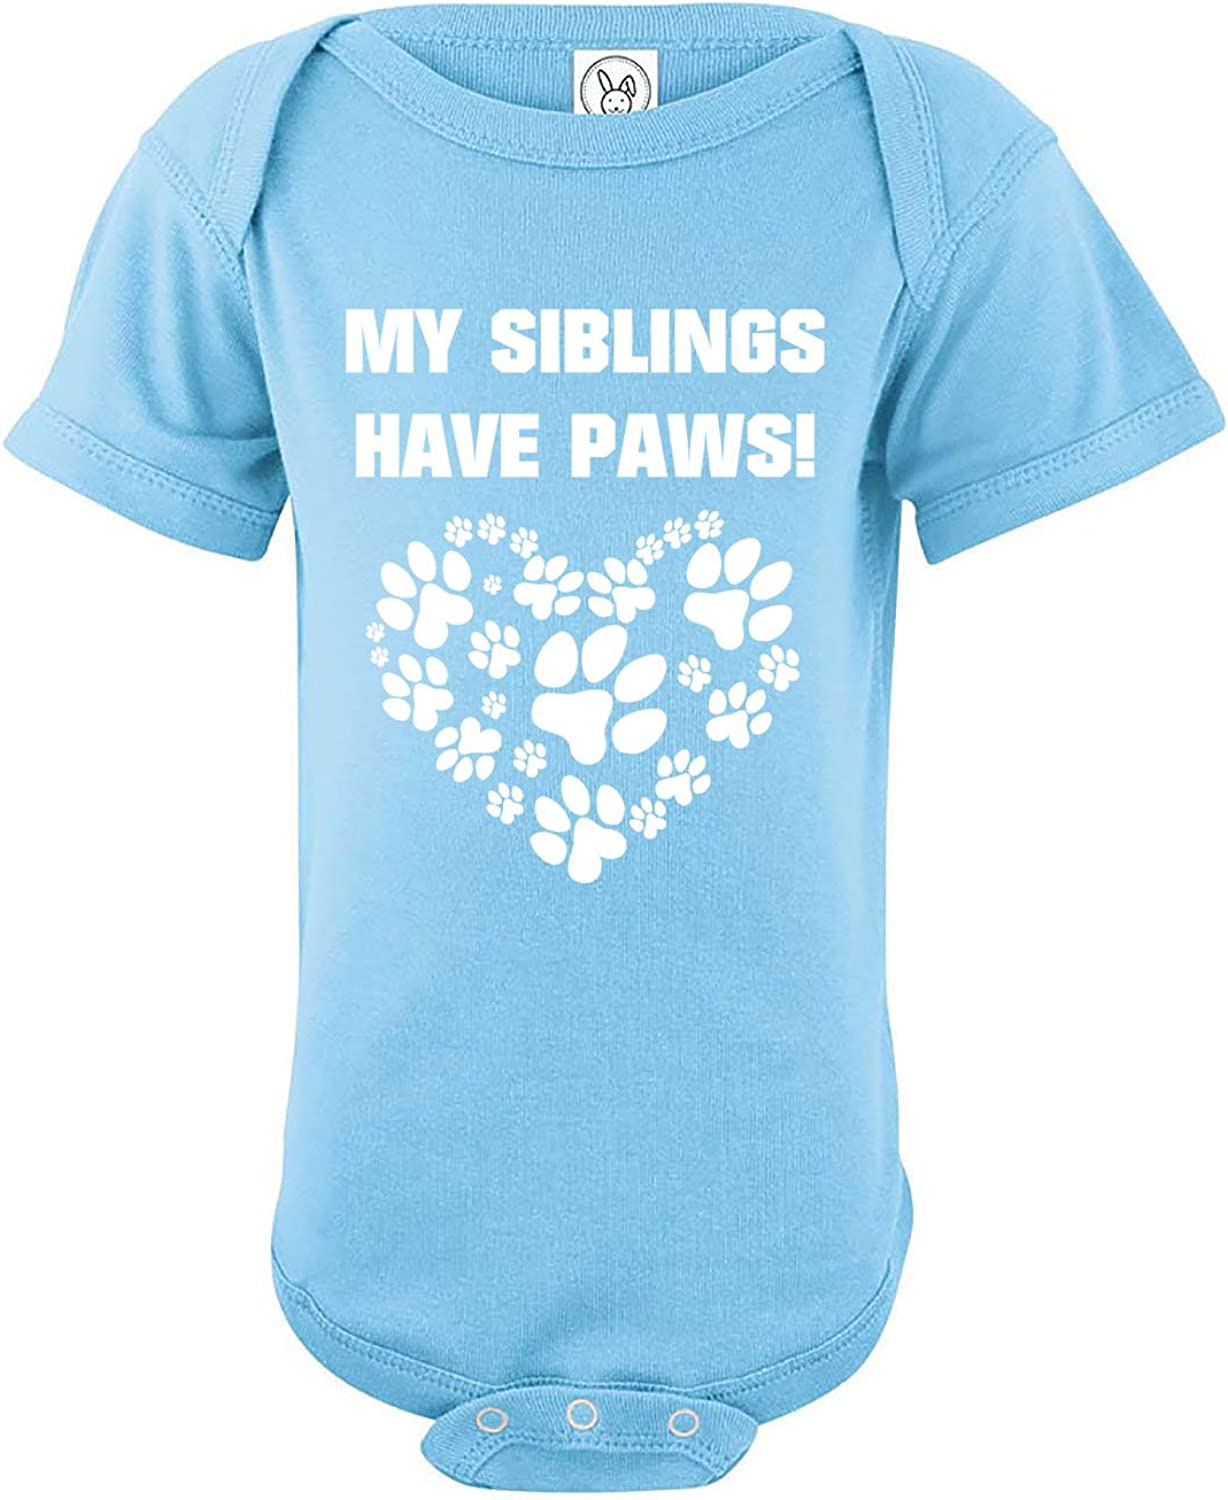 My Siblings Have Paws - Funny Newborn Unisex Baby Cotton Bodysuit - Infant One-Piece Romper Outfit